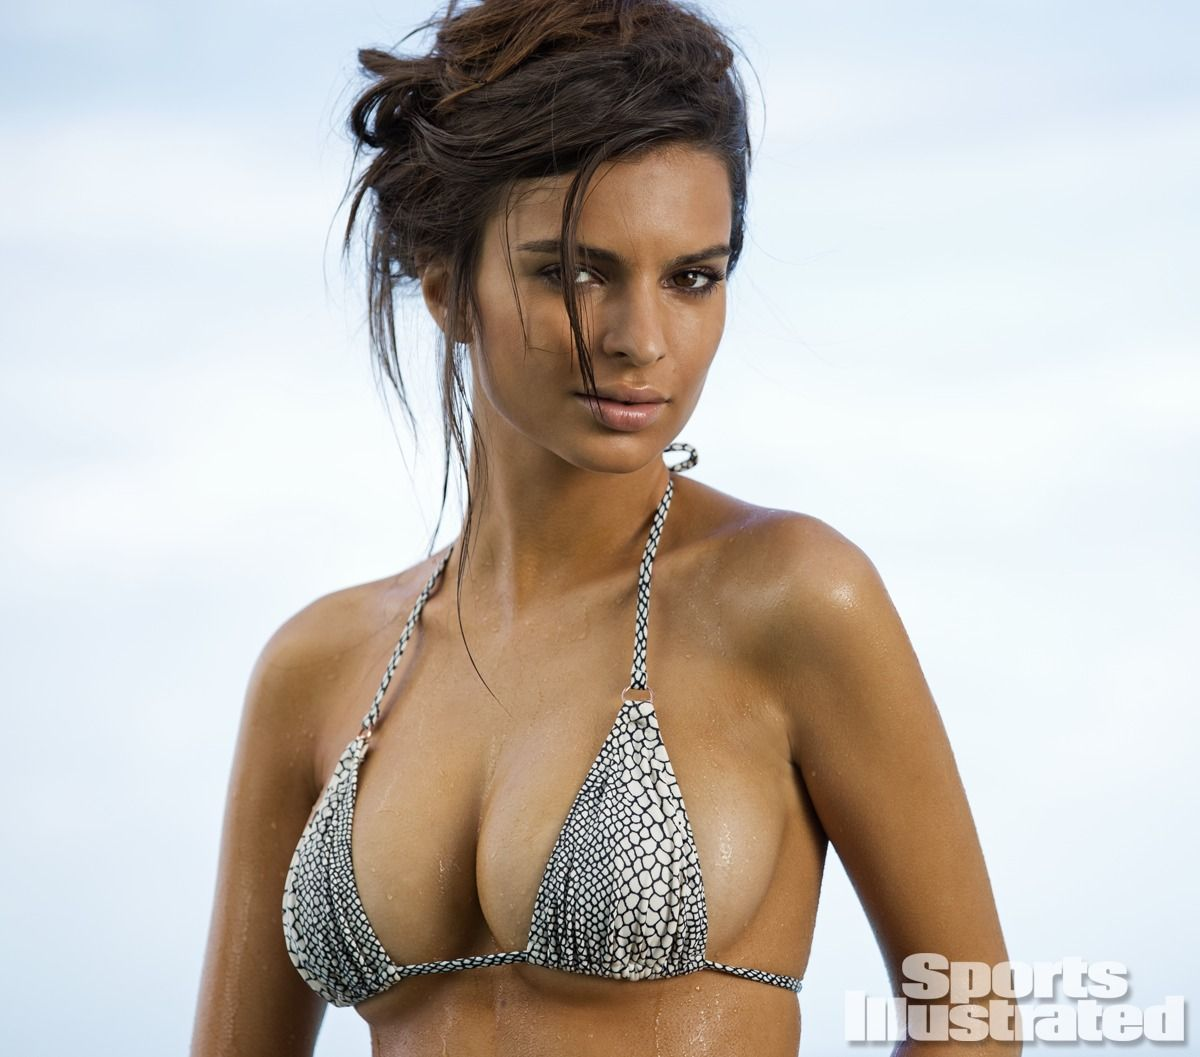 emily-ratajkowski-in-sports-illustrated-2014-swimsuit-issue_19.jpg - 119.05 KB